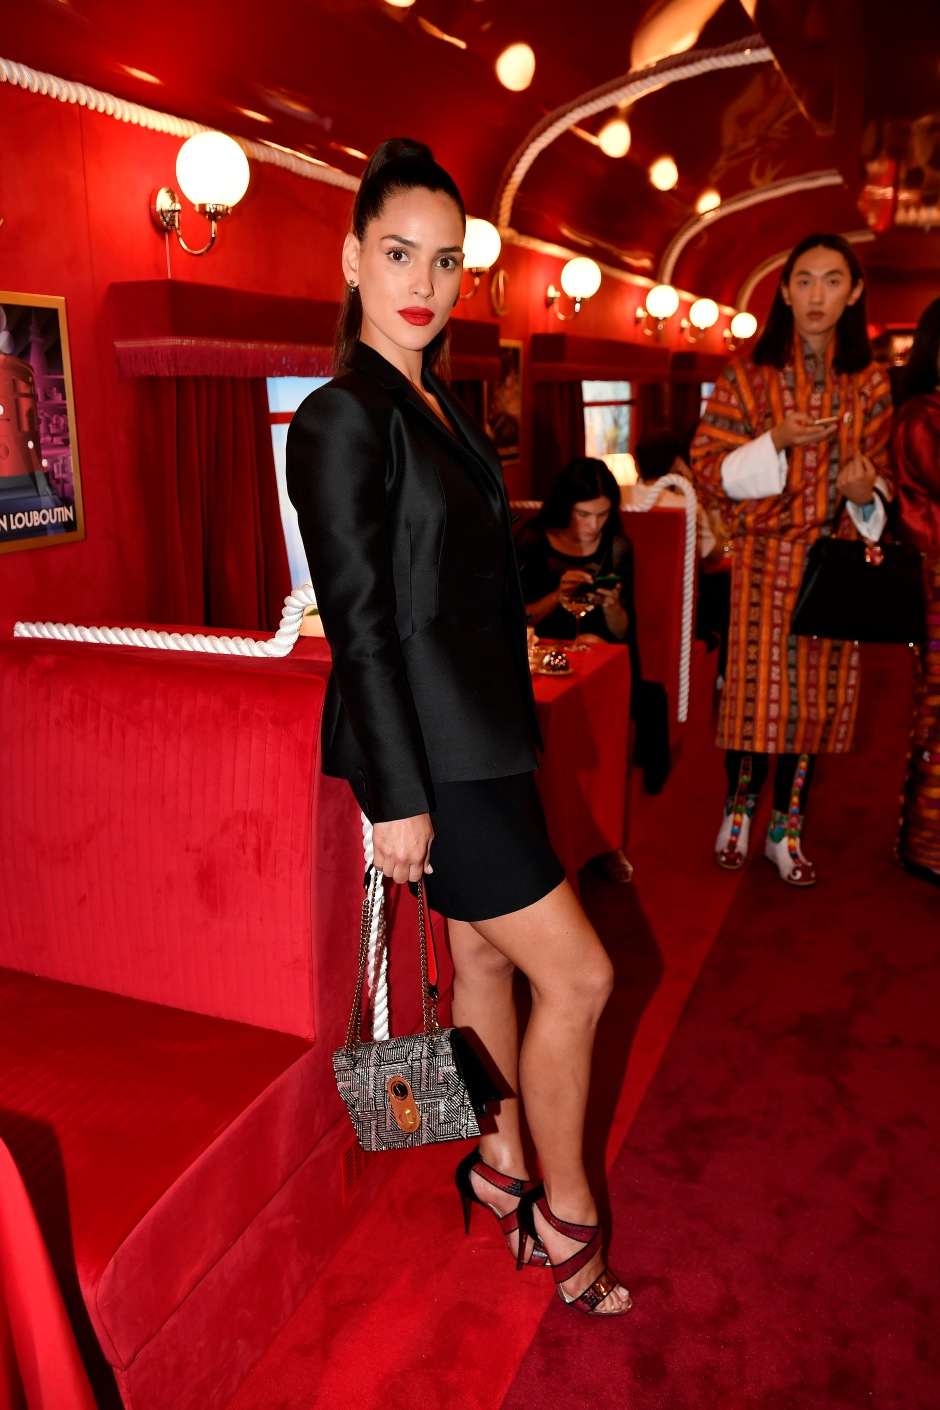 Christian Louboutin presents Loubhoutan Express